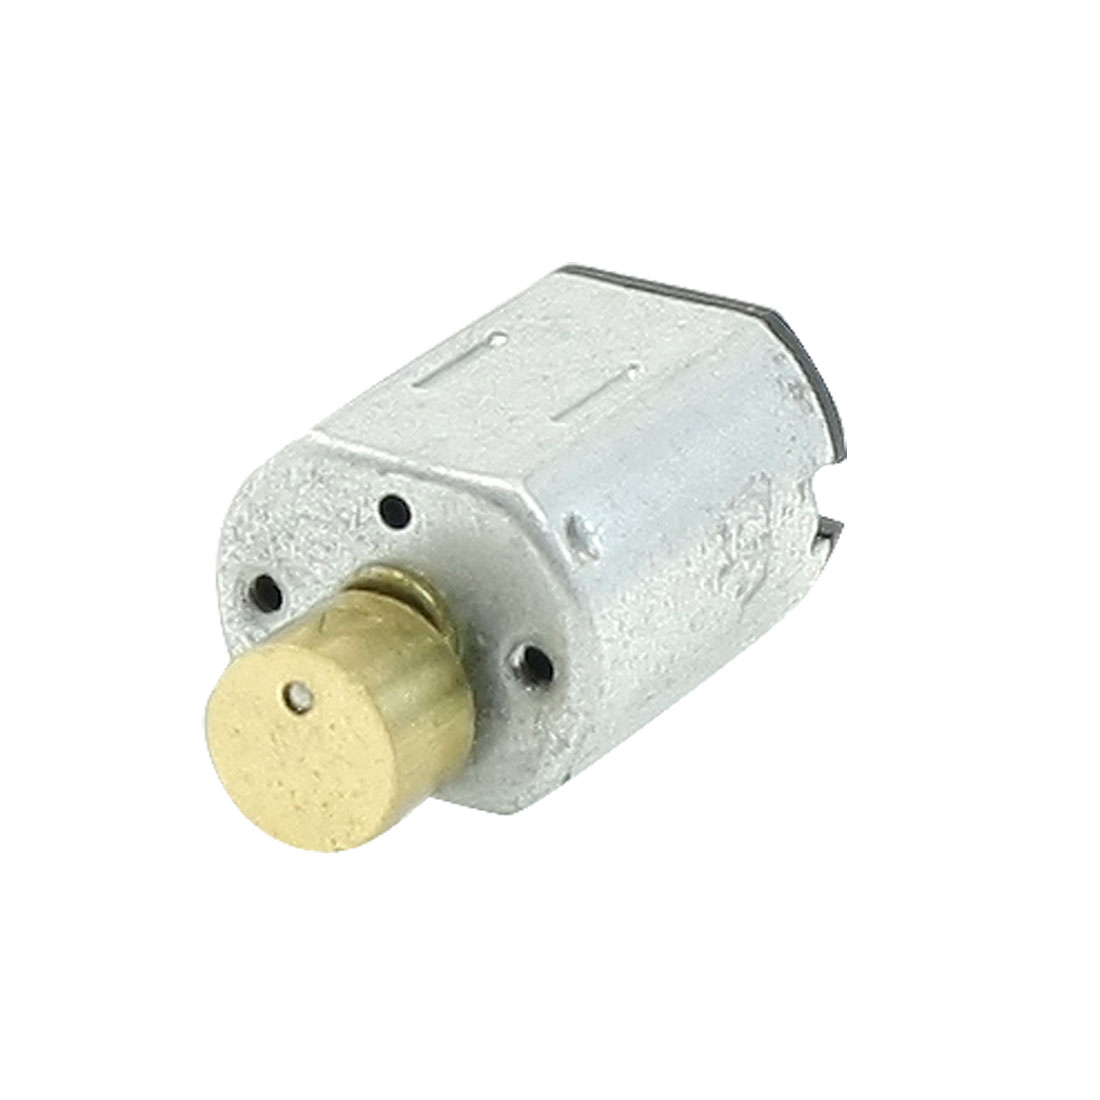 Mini-Vibrating-Vibration-Vibrator-Motor-DC-1-5V-1200RPM-N20